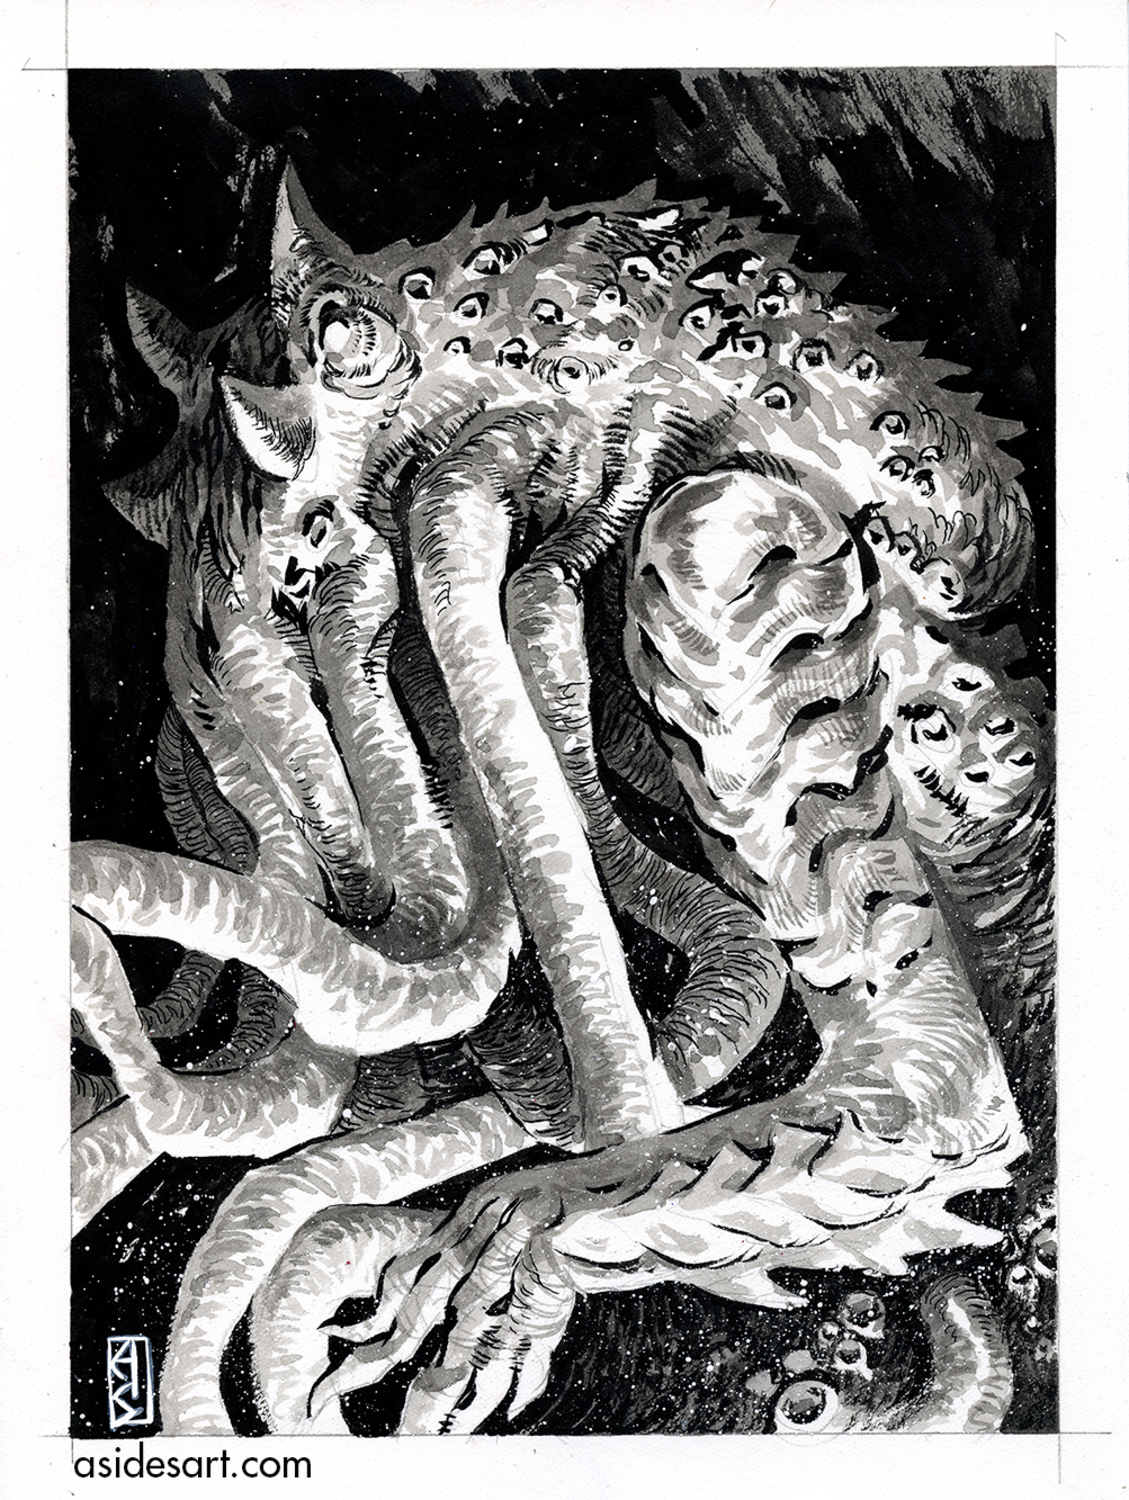 Cthulhu Artwork by Andrew Sides